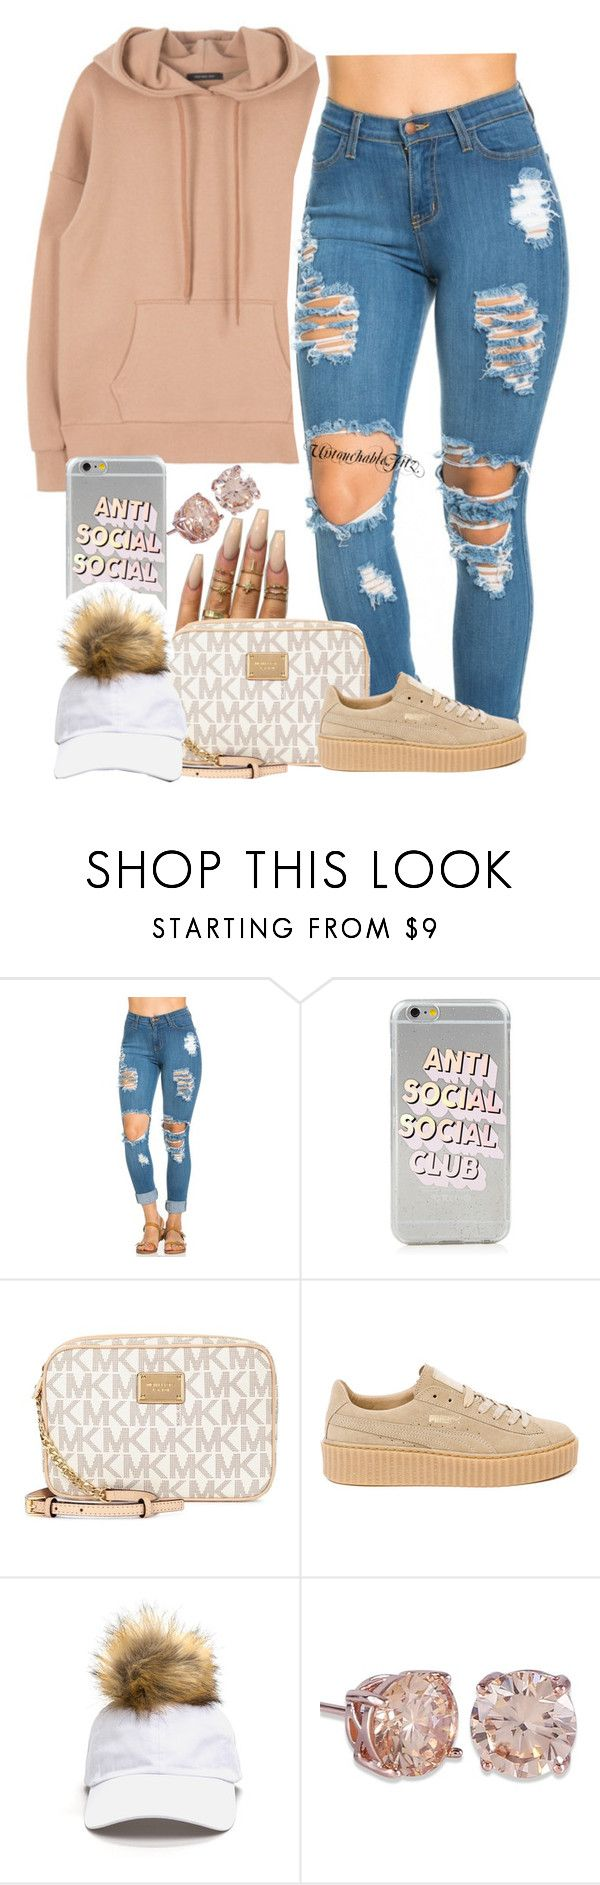 """""""K Camp - Touchdown"""" by renipooh ❤ liked on Polyvore featuring Floss Gloss, Michael Kors and Puma"""